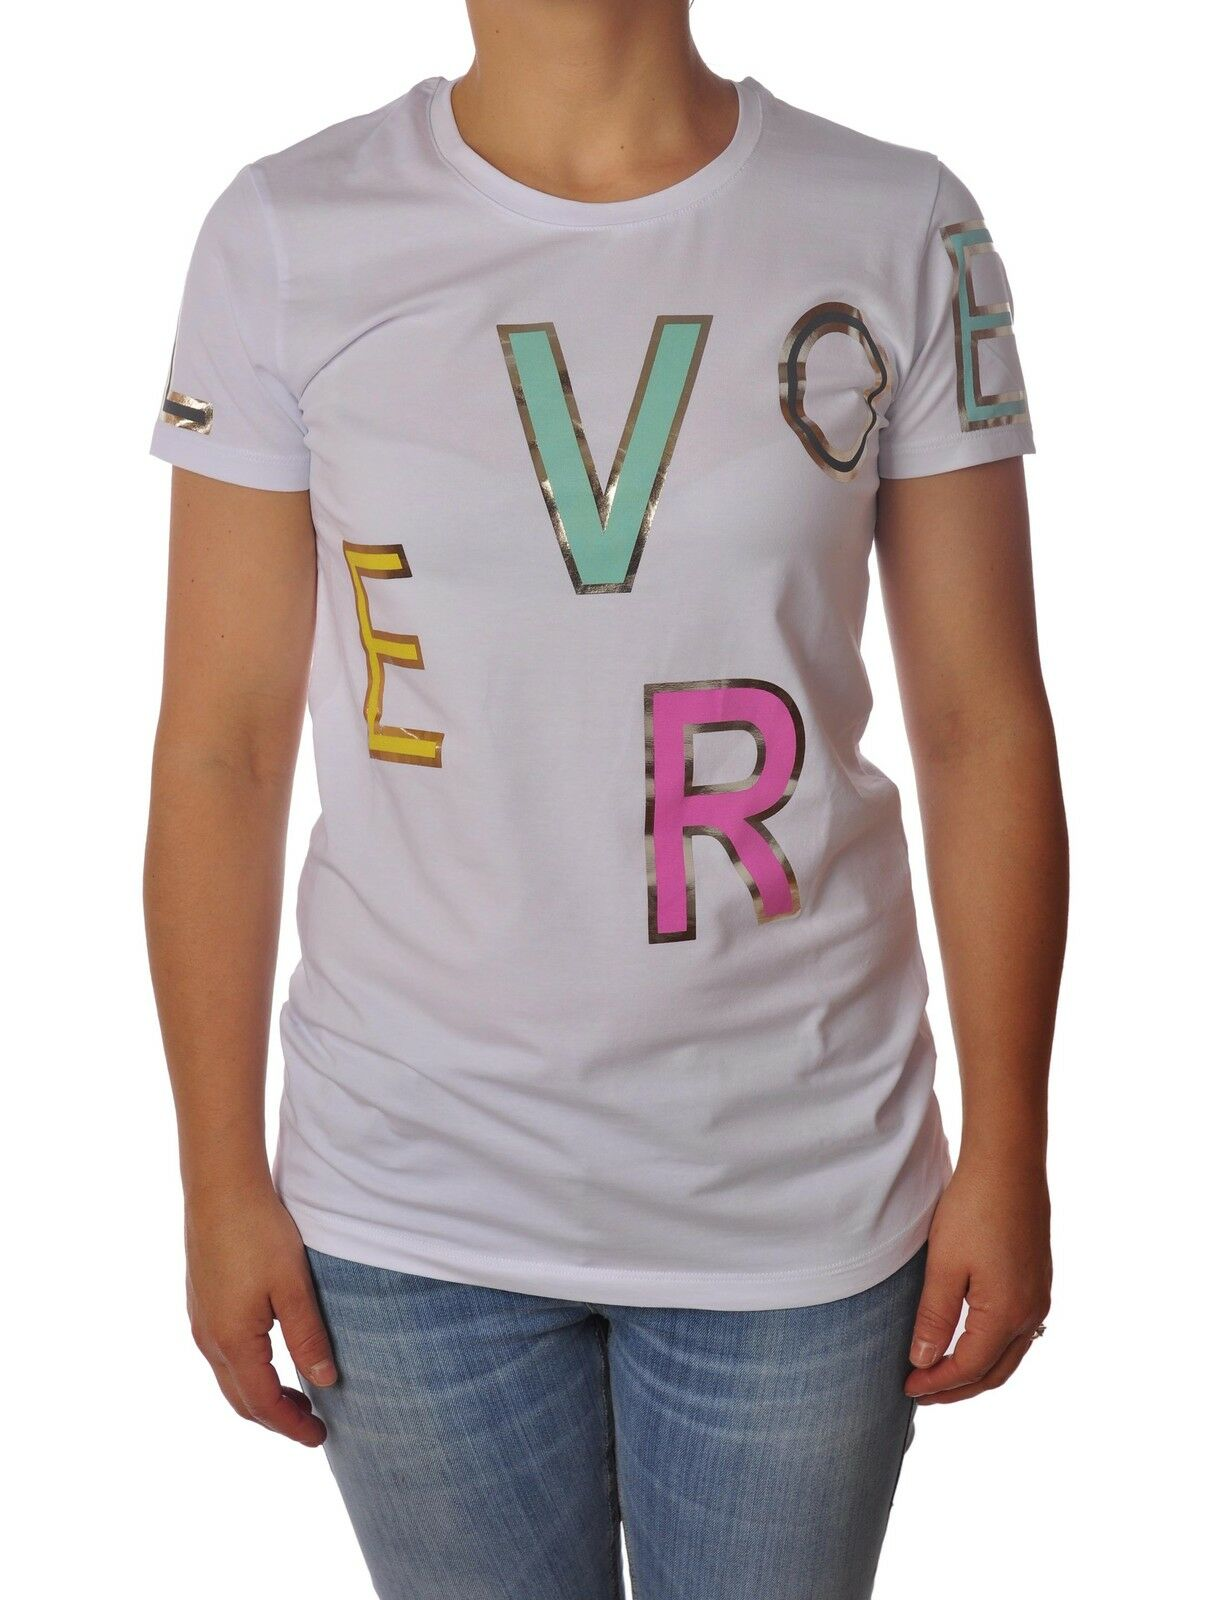 Le Voliere  -  T - Weiblich - white - 3791829A182306